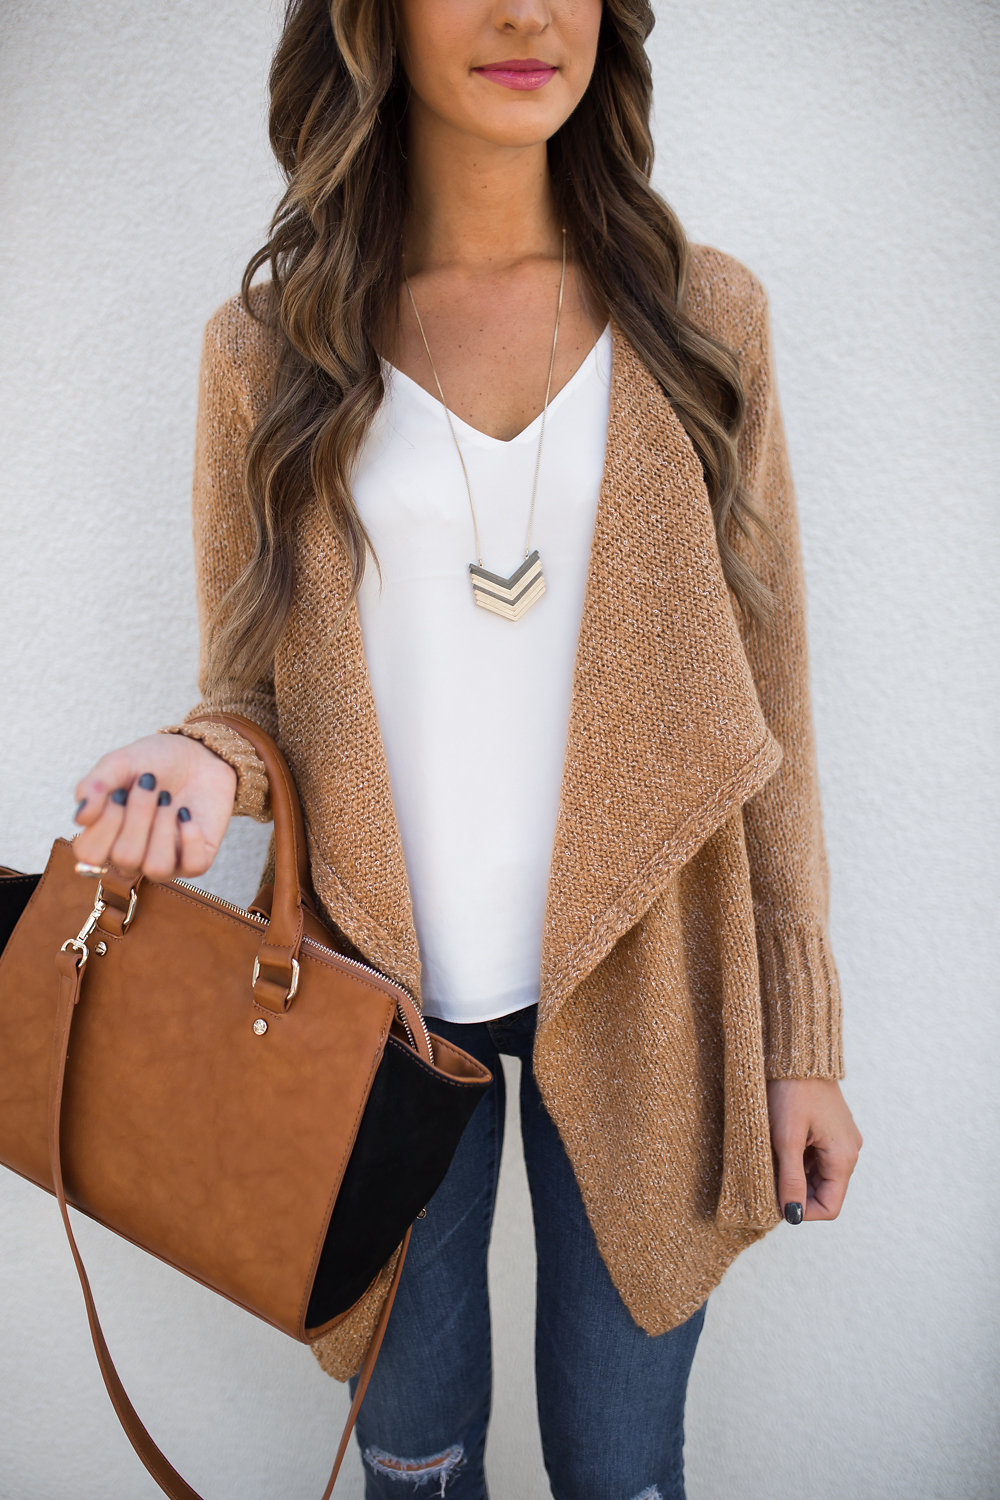 Cardigans And Necklaces: My Cardigan Obsession